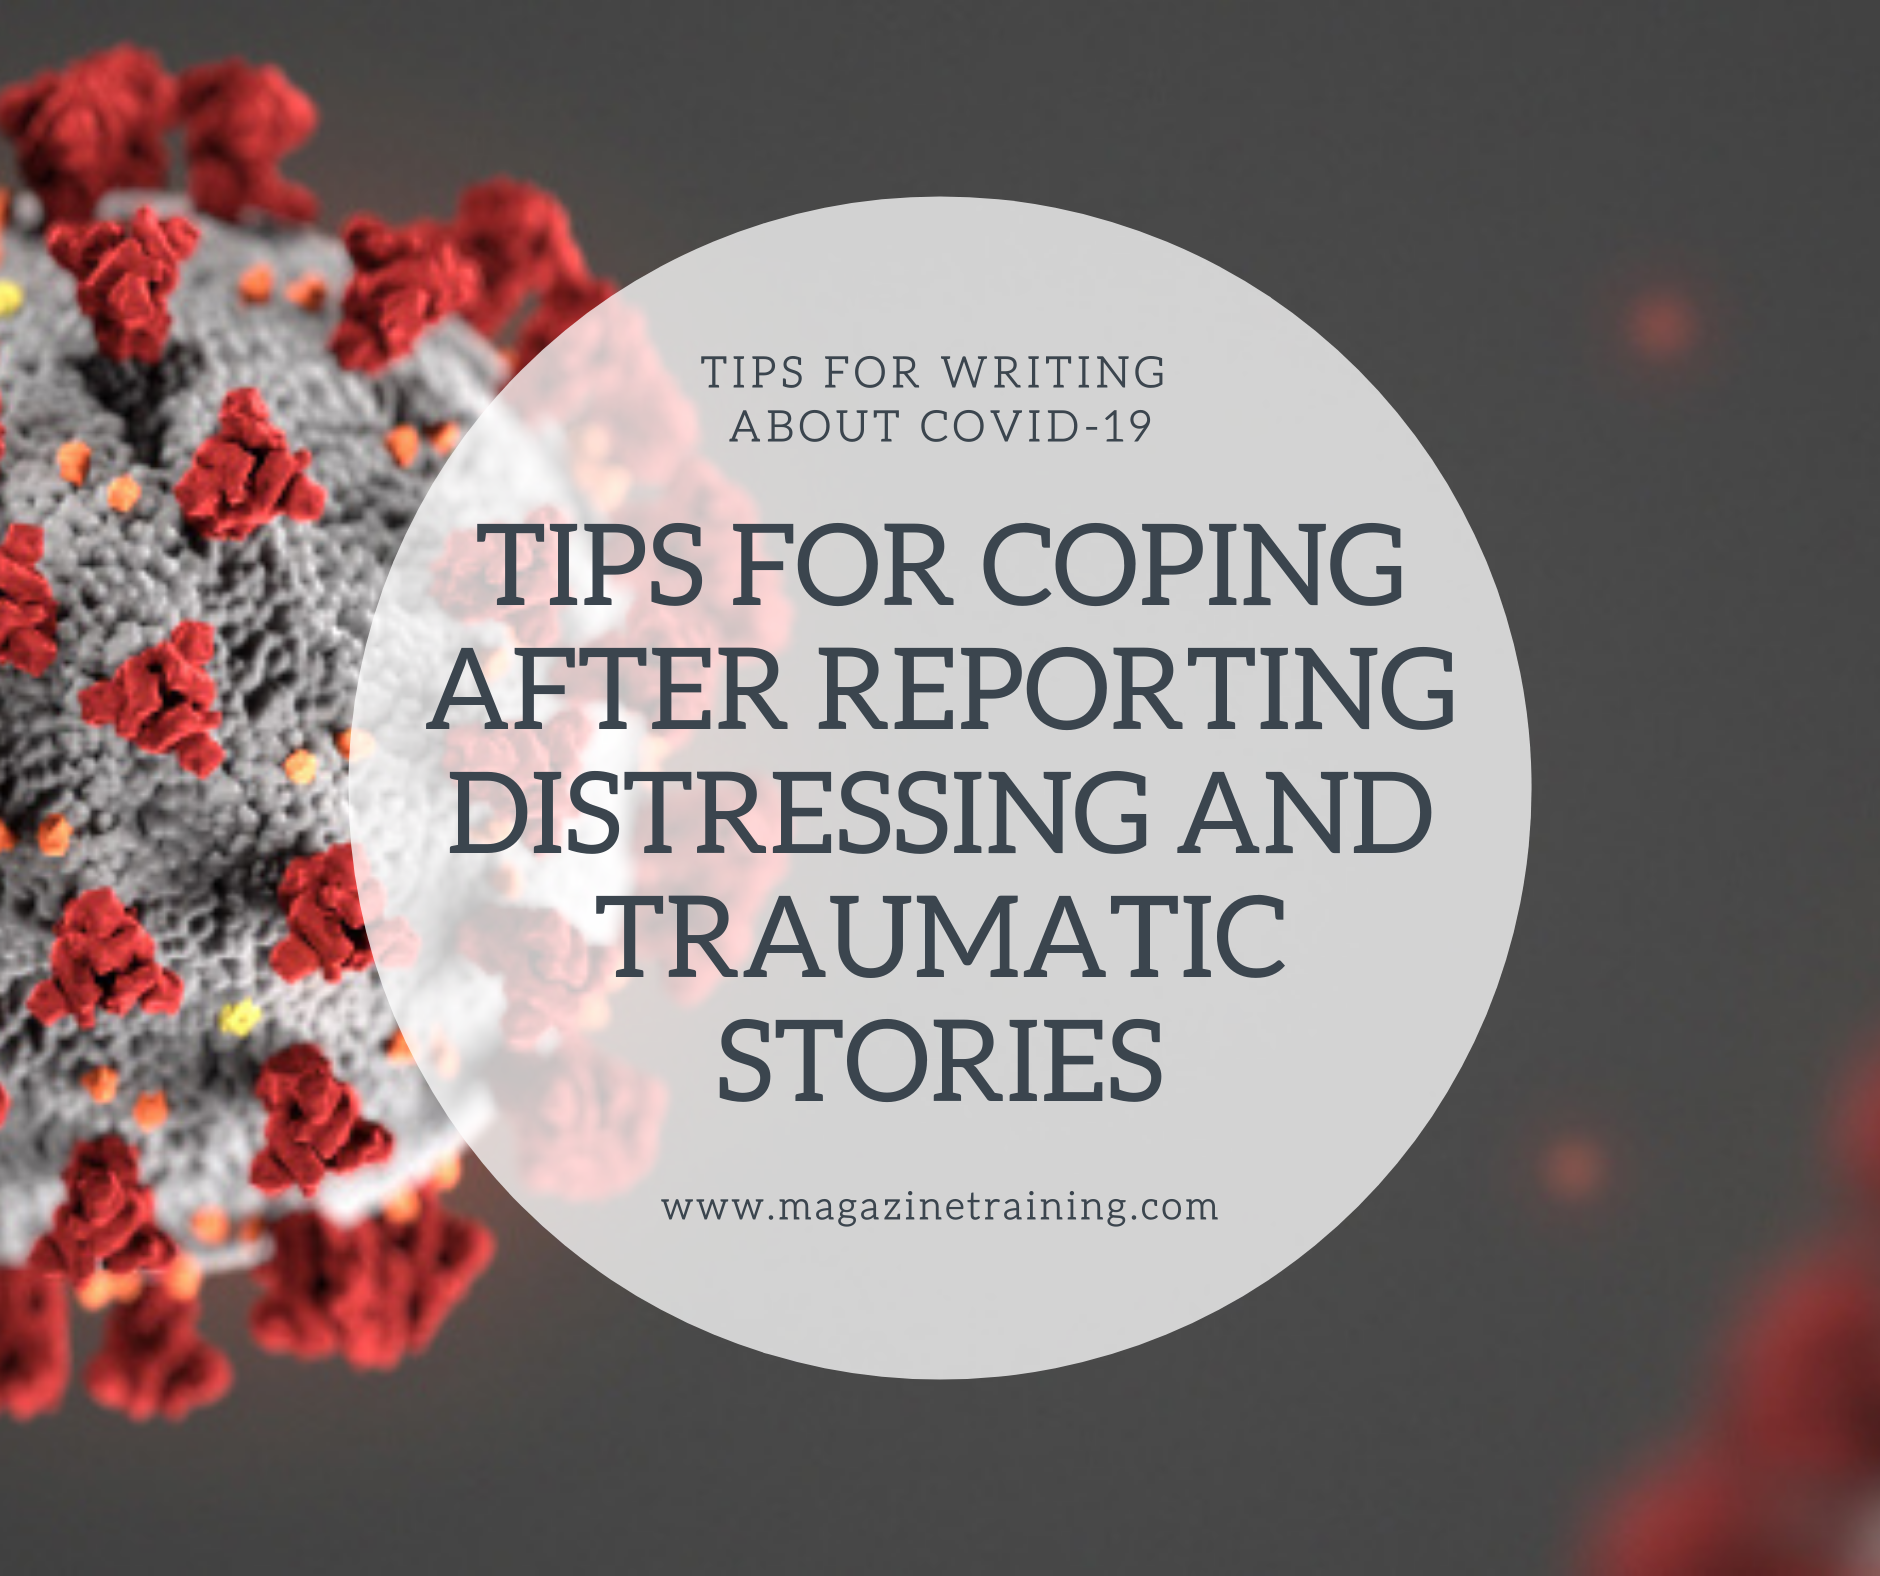 tips for coping